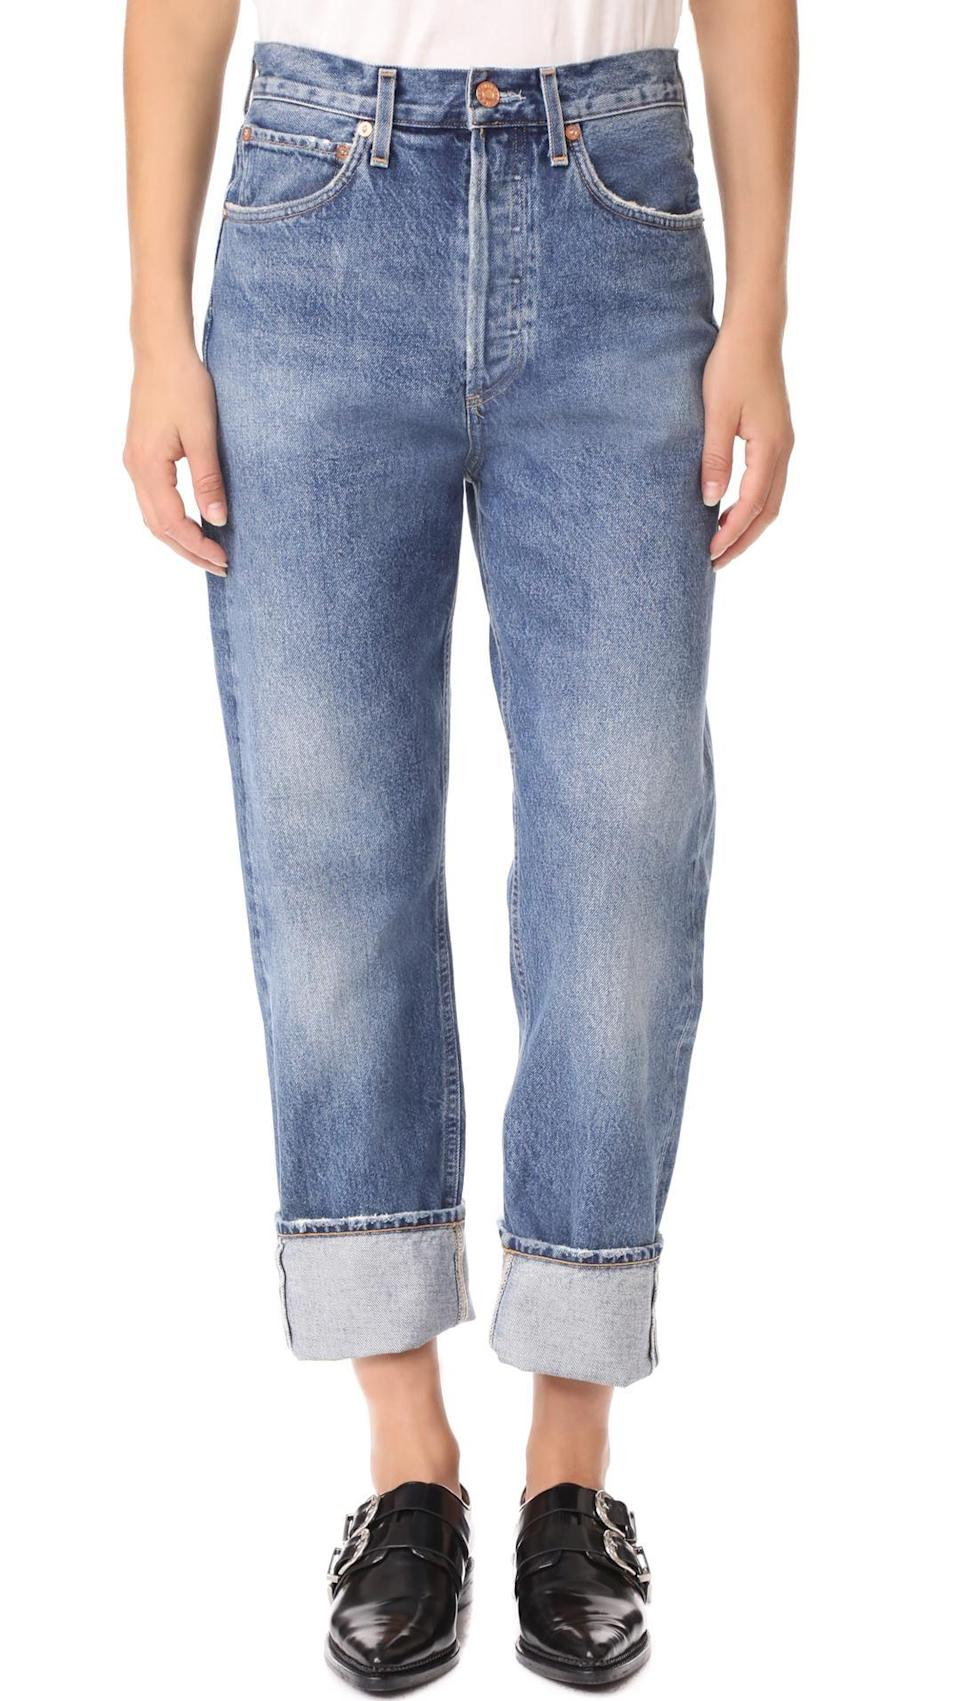 These are your forever jeans. Available in sizes 26 to 32.